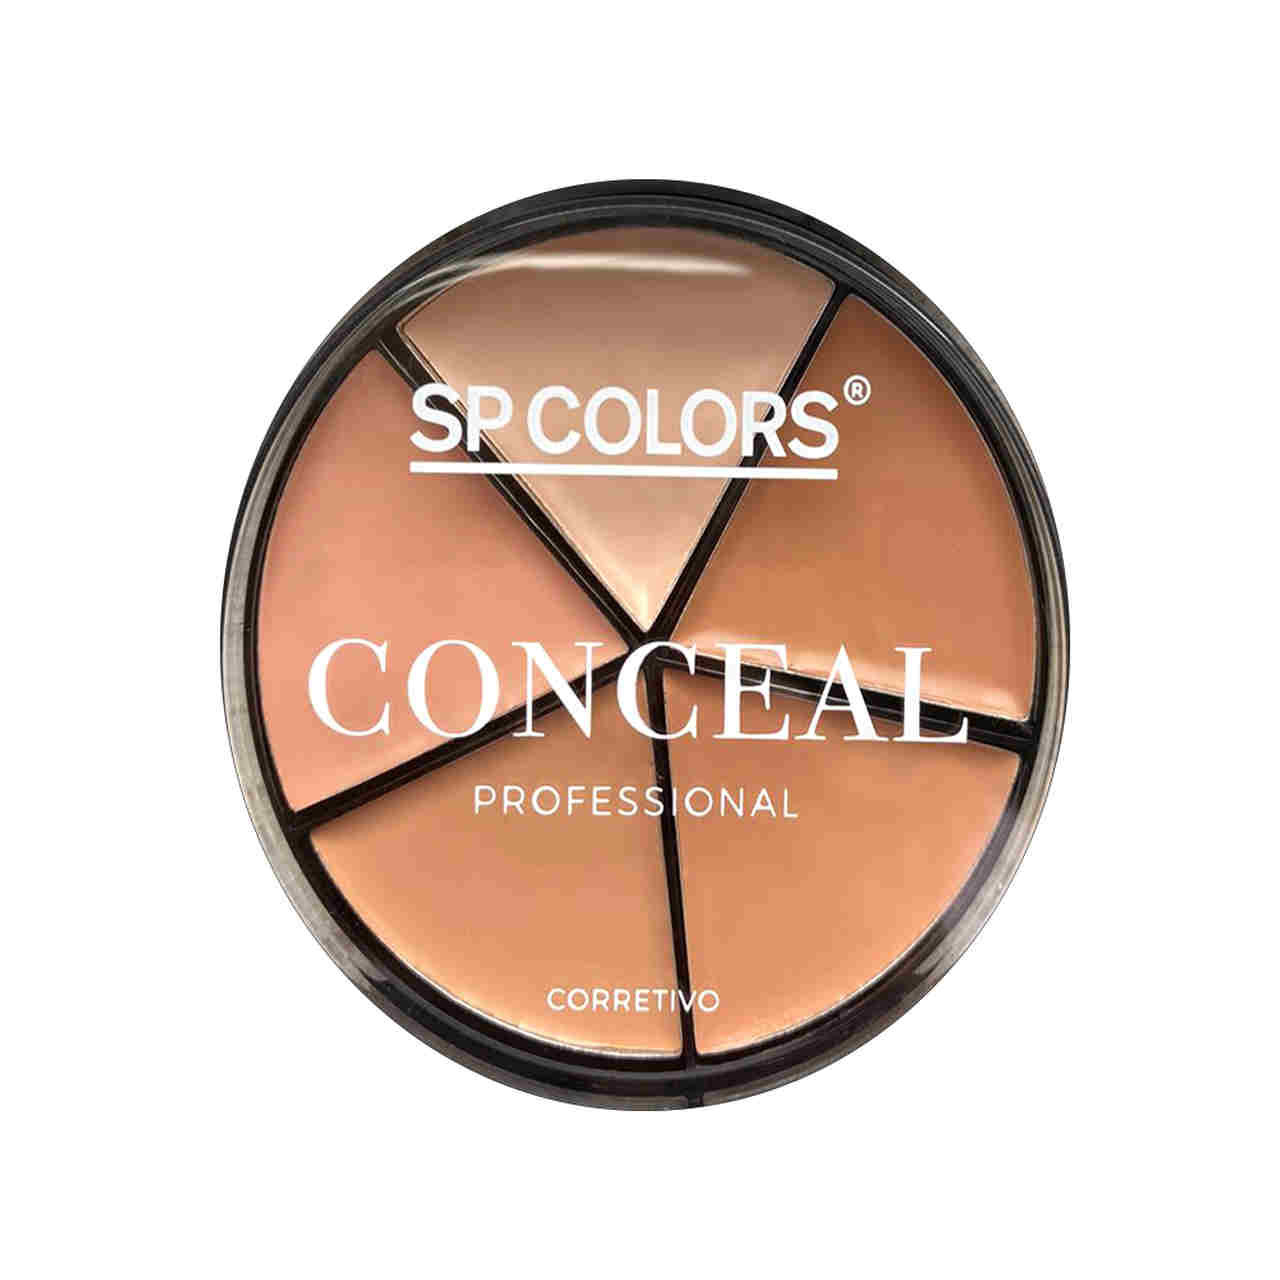 Corretivo Conceal Professional SP Colors